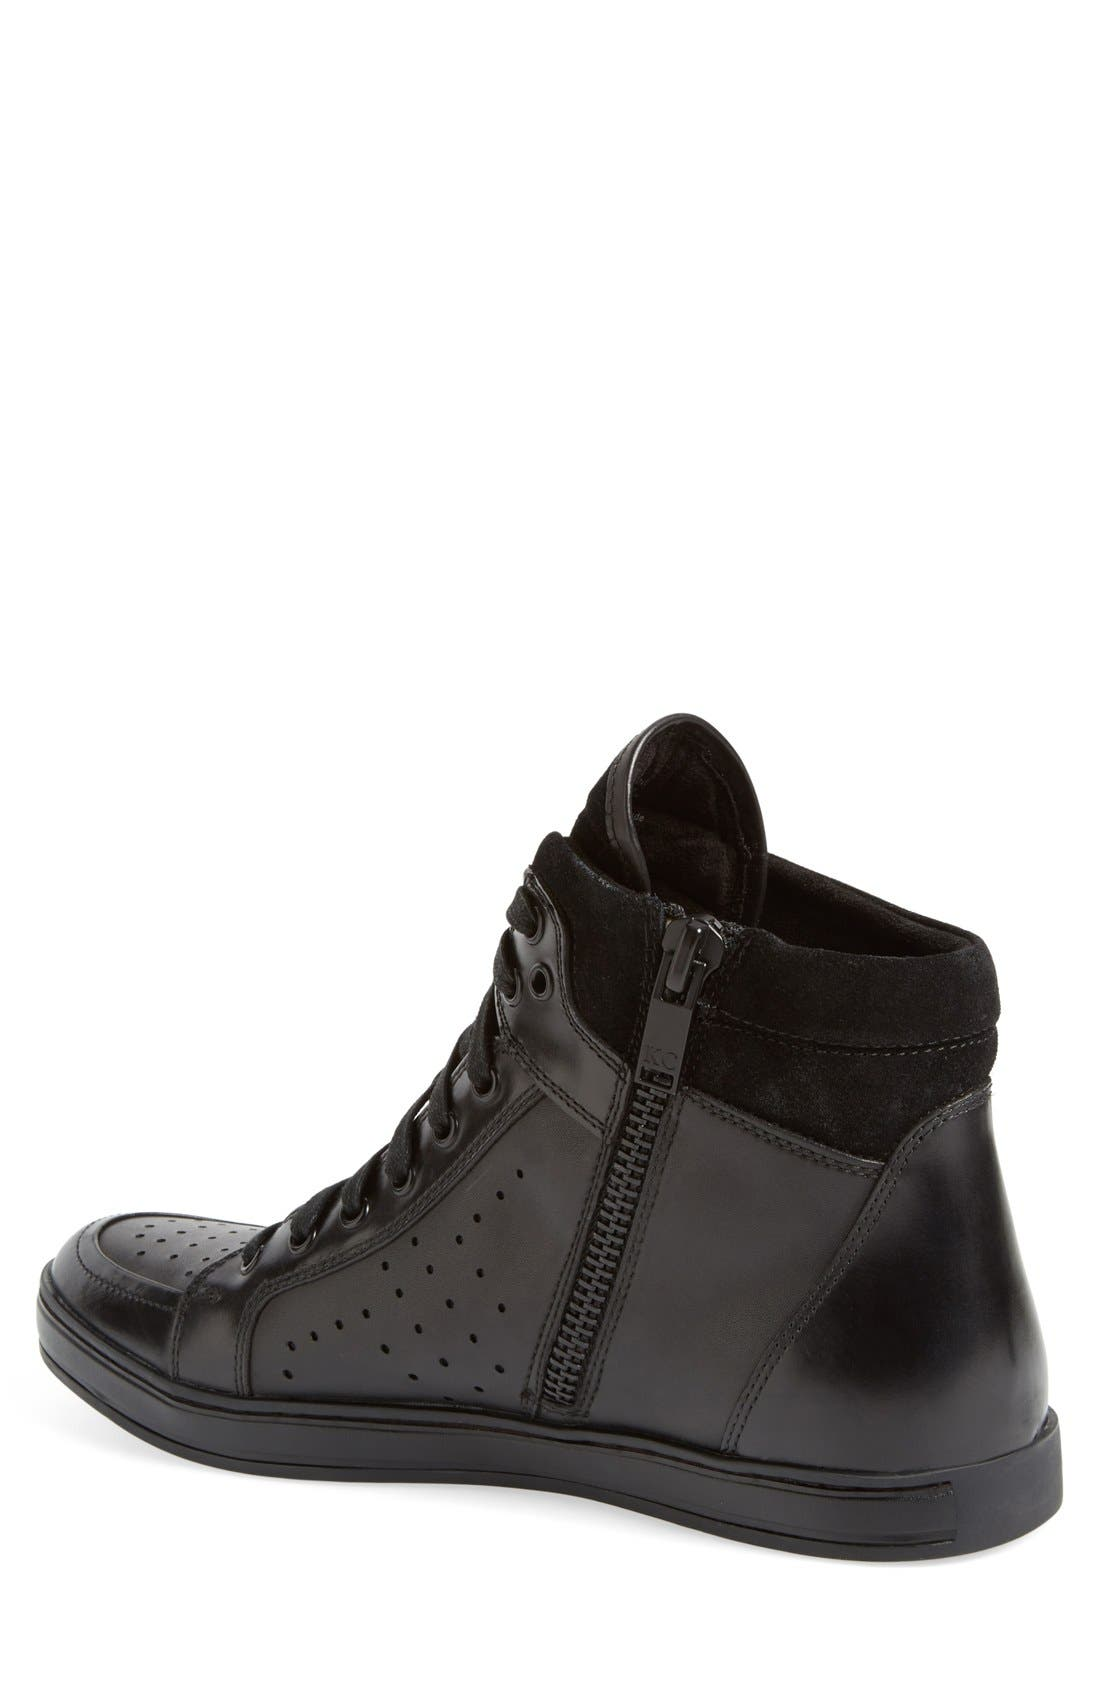 Alternate Image 2  - Kenneth Cole New York 'Big Brand' Sneaker (Men)